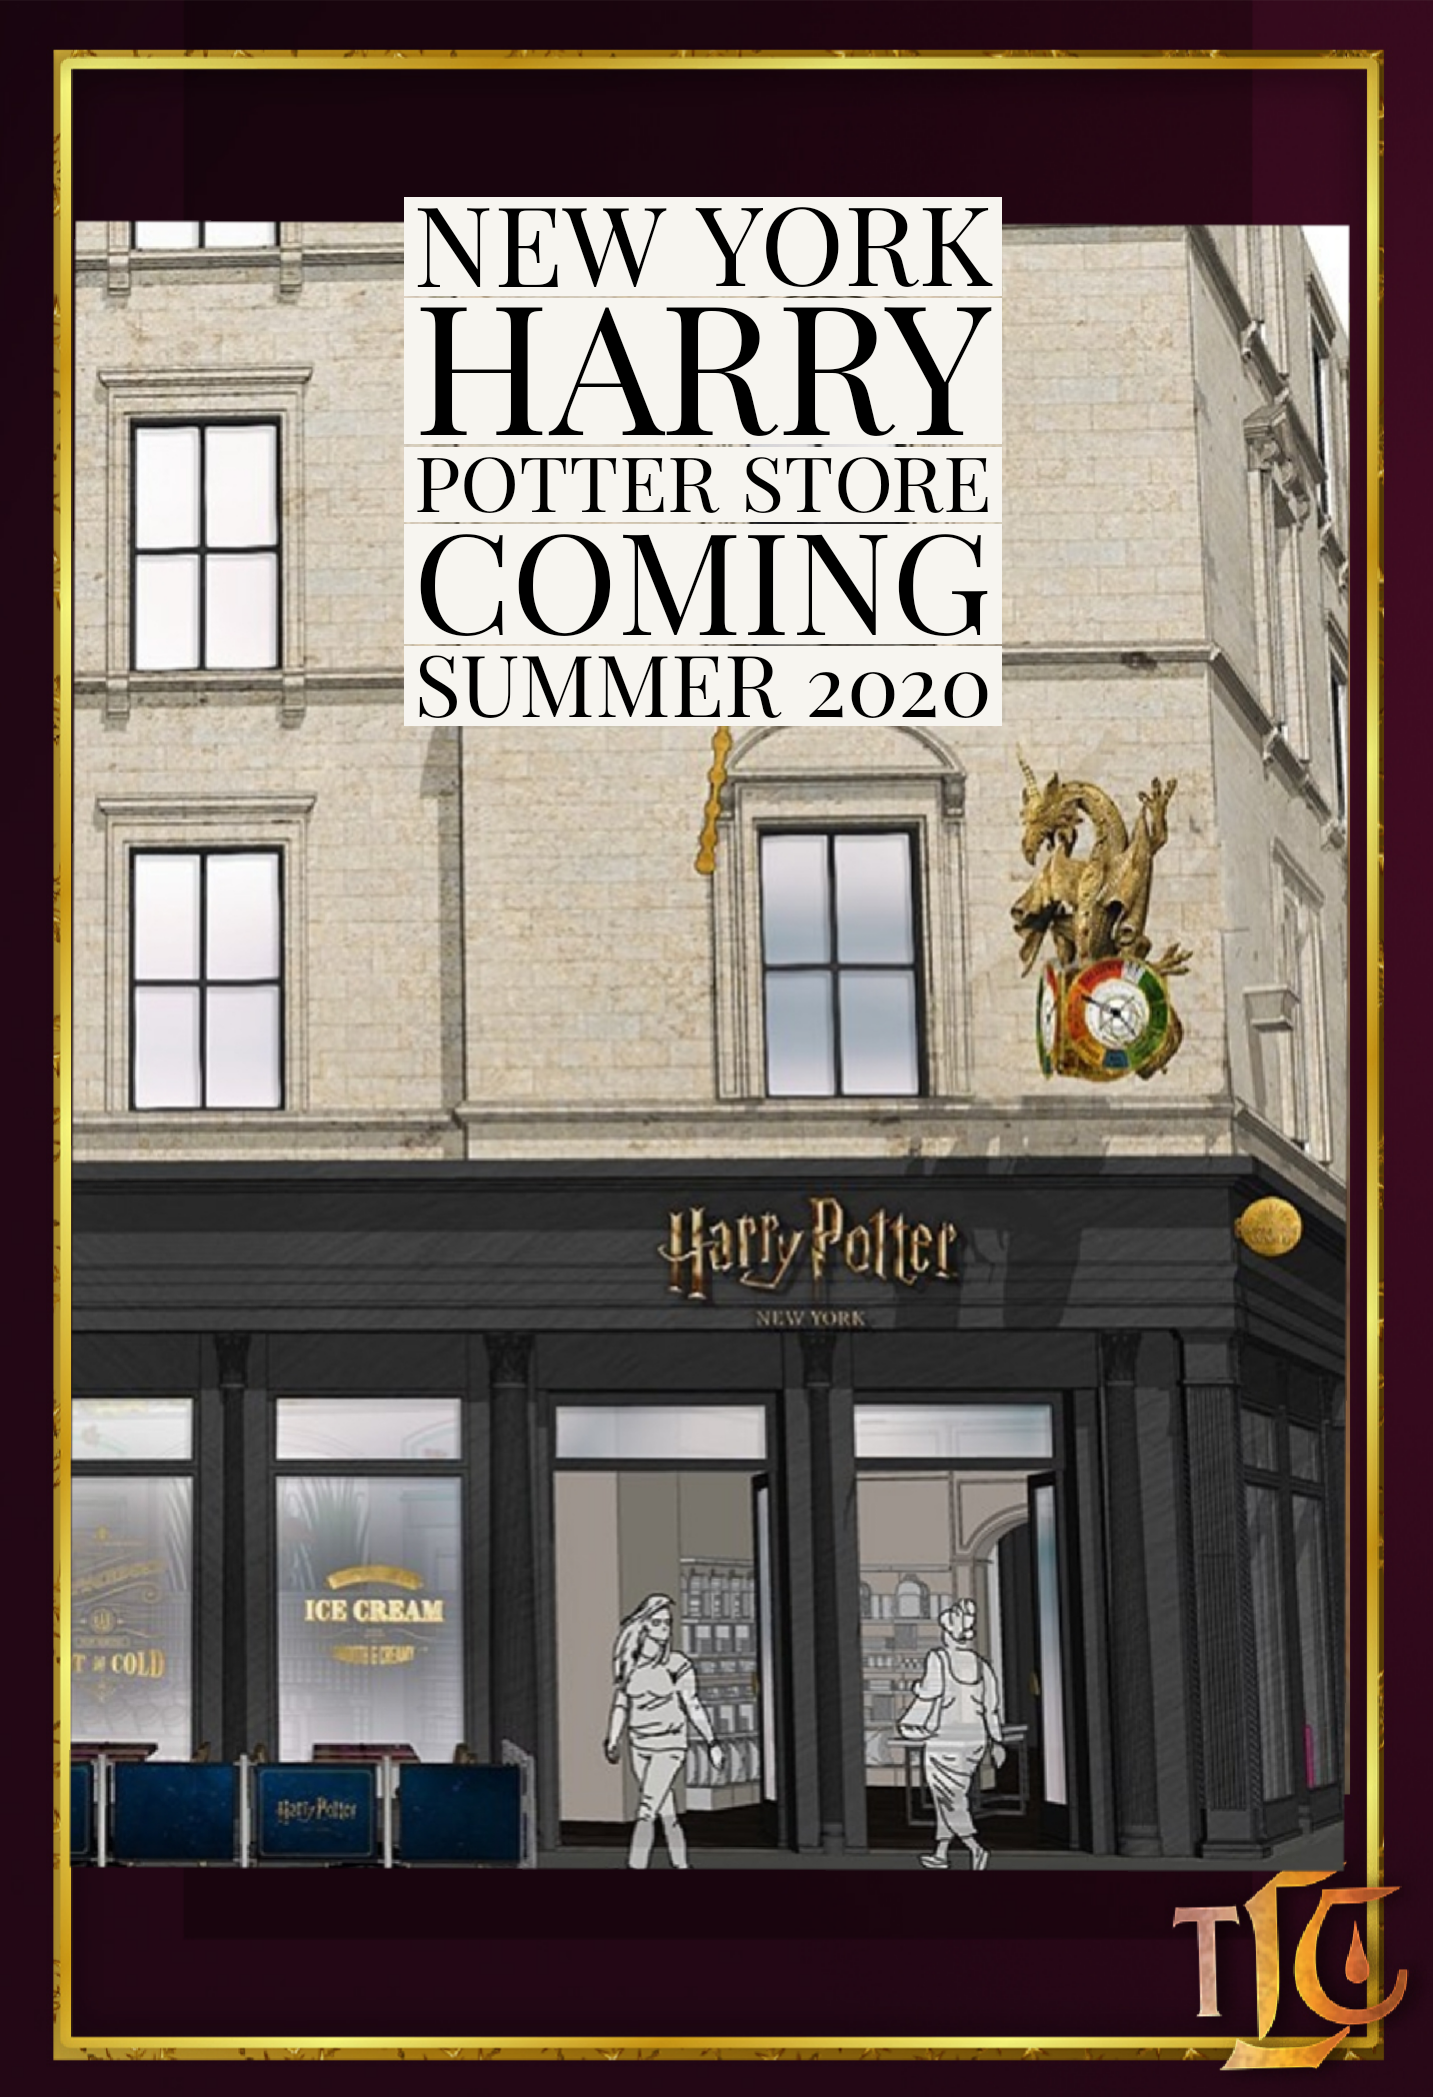 Read Harry Potter A History Of Magic The Ebook Of The Exhibition By British British Librar In 2020 A History Of Magic Harry Potter Stories Harry Potter Pdf Download